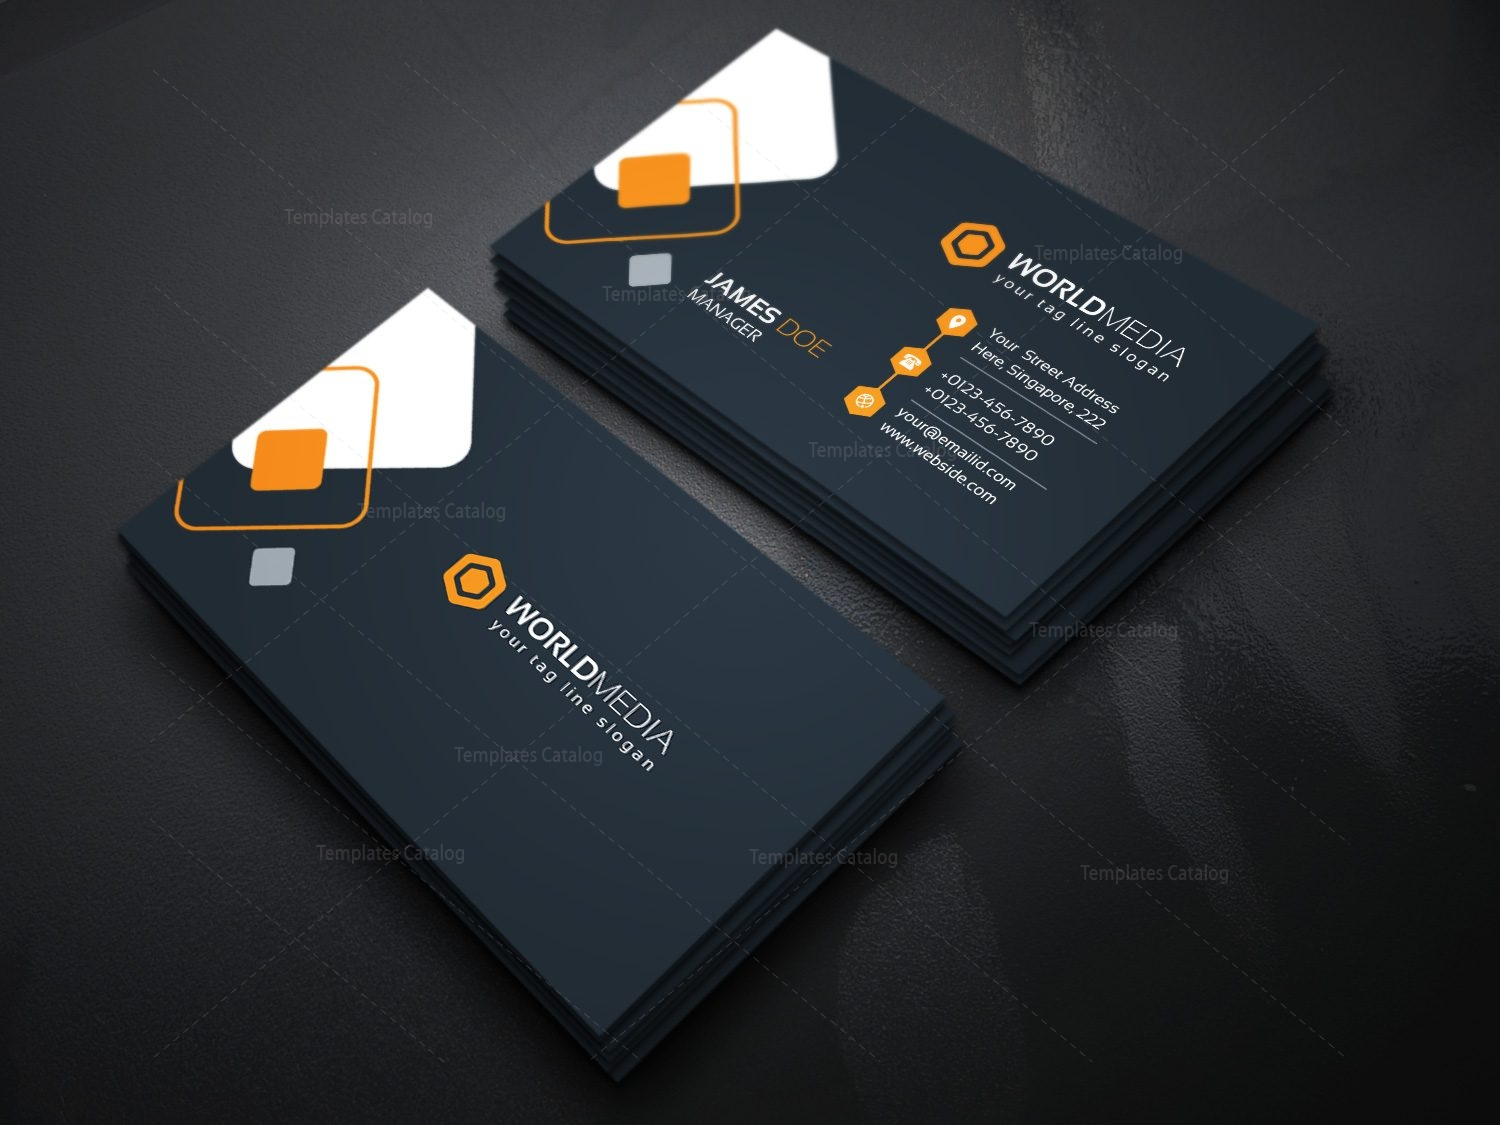 Technology pany Business Card Template Template Catalog